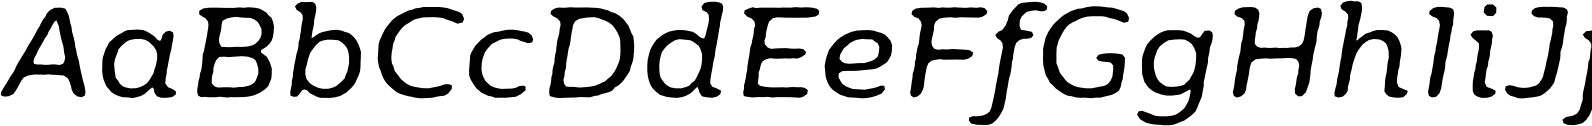 Moreno Rough Two Regular Italic Font